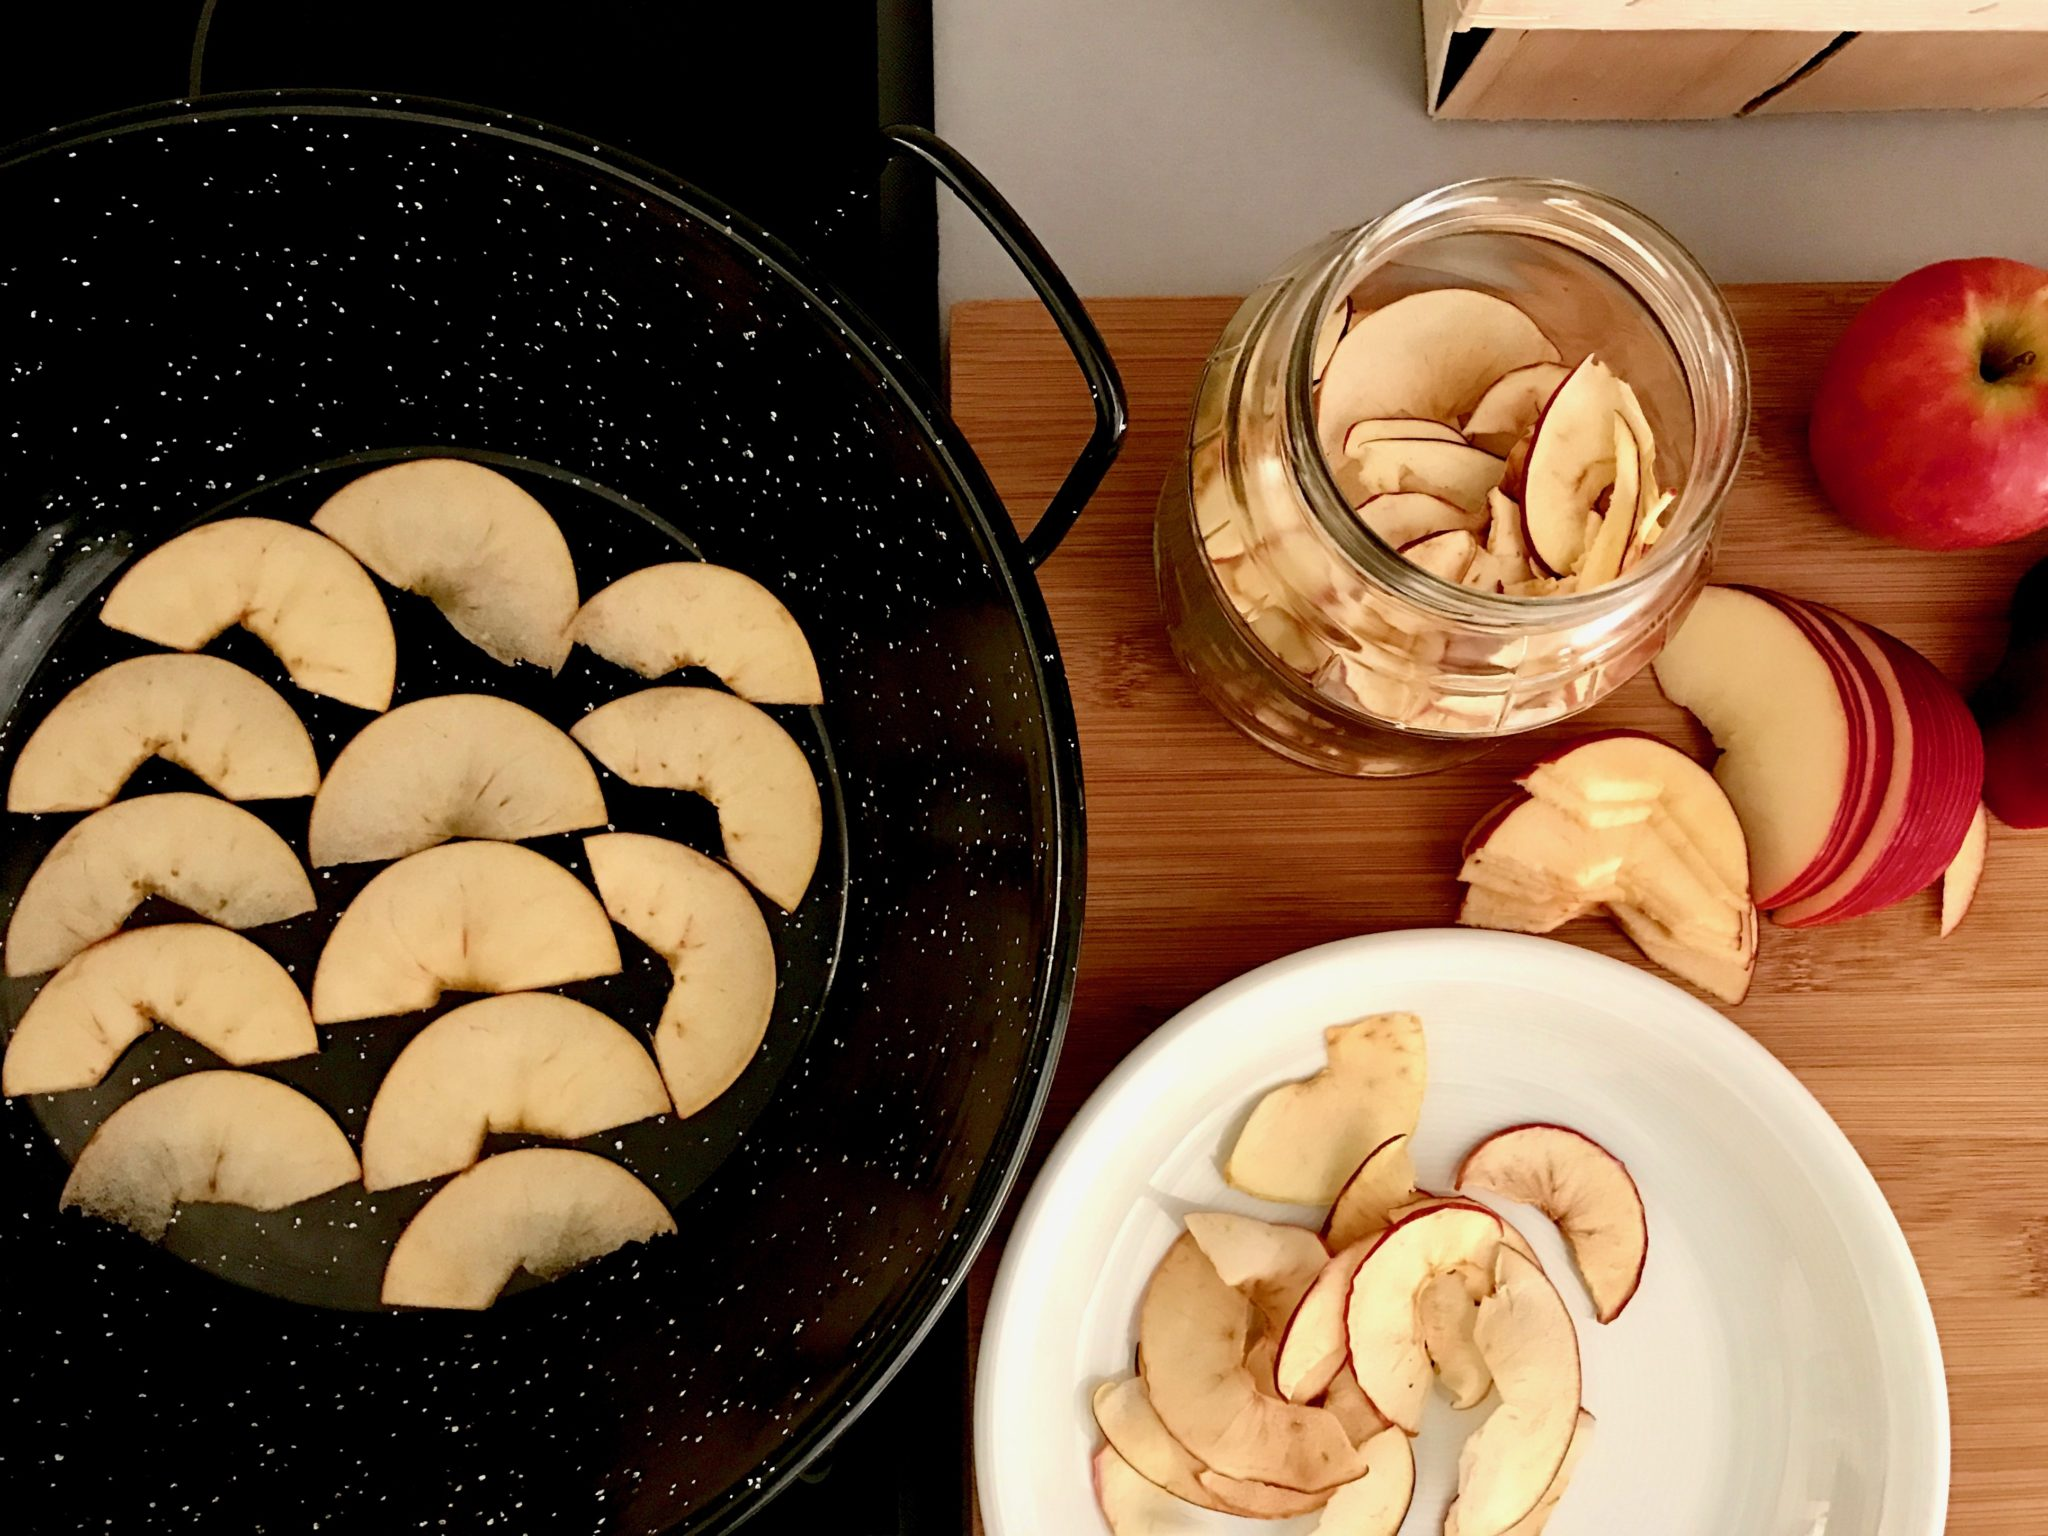 take the dried pices out and cool them on a plate